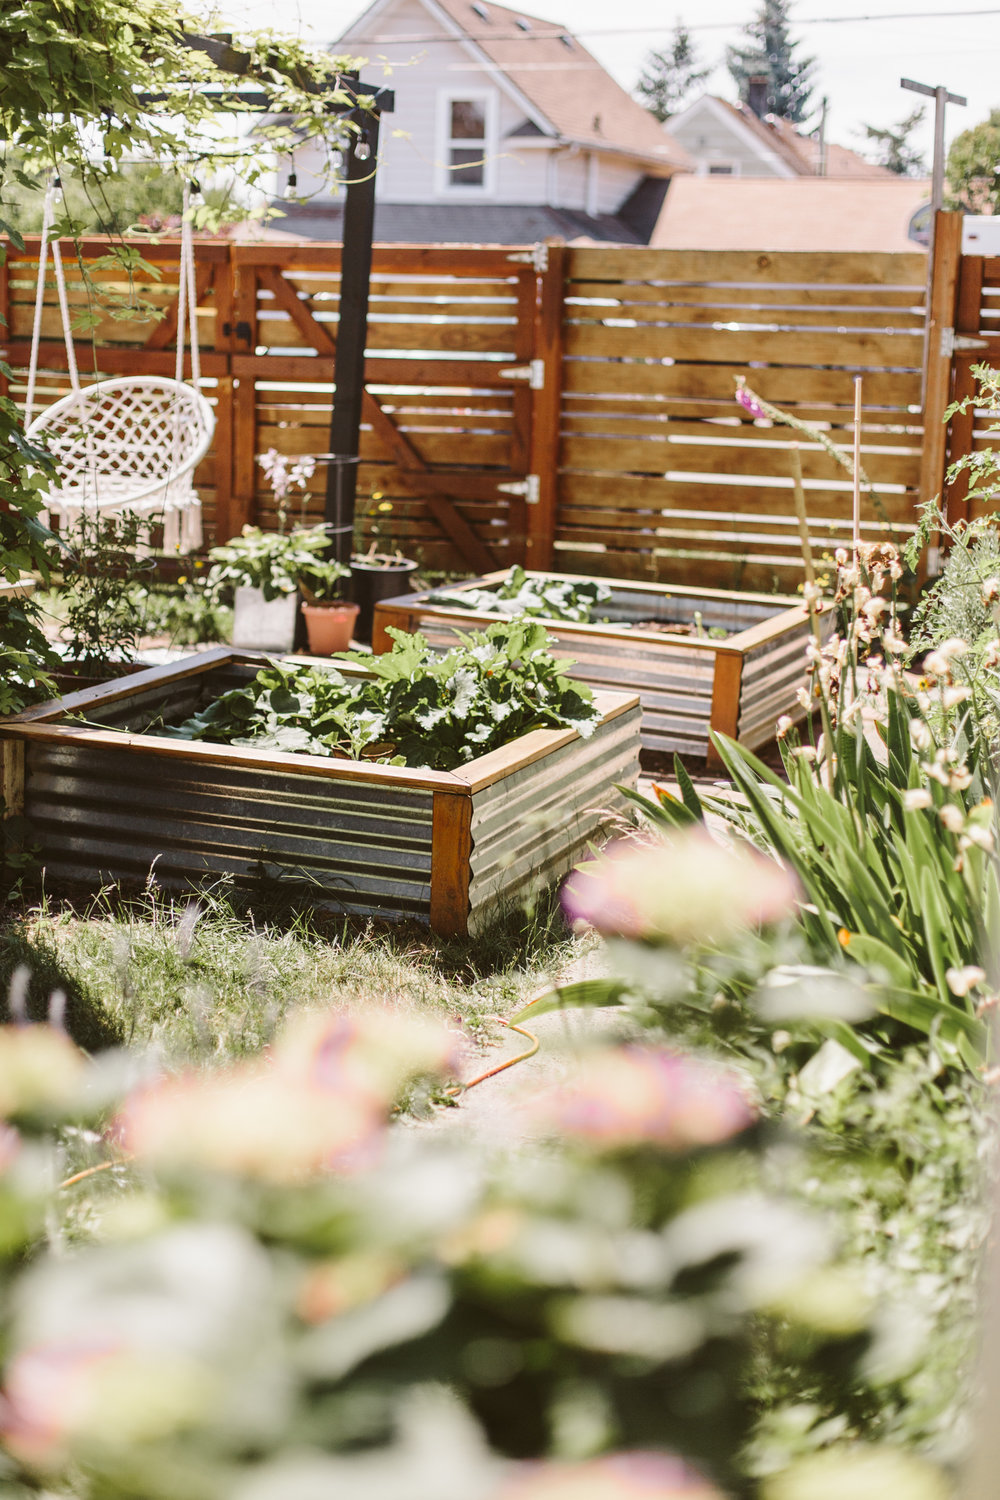 DIY corrugated metal raised beds